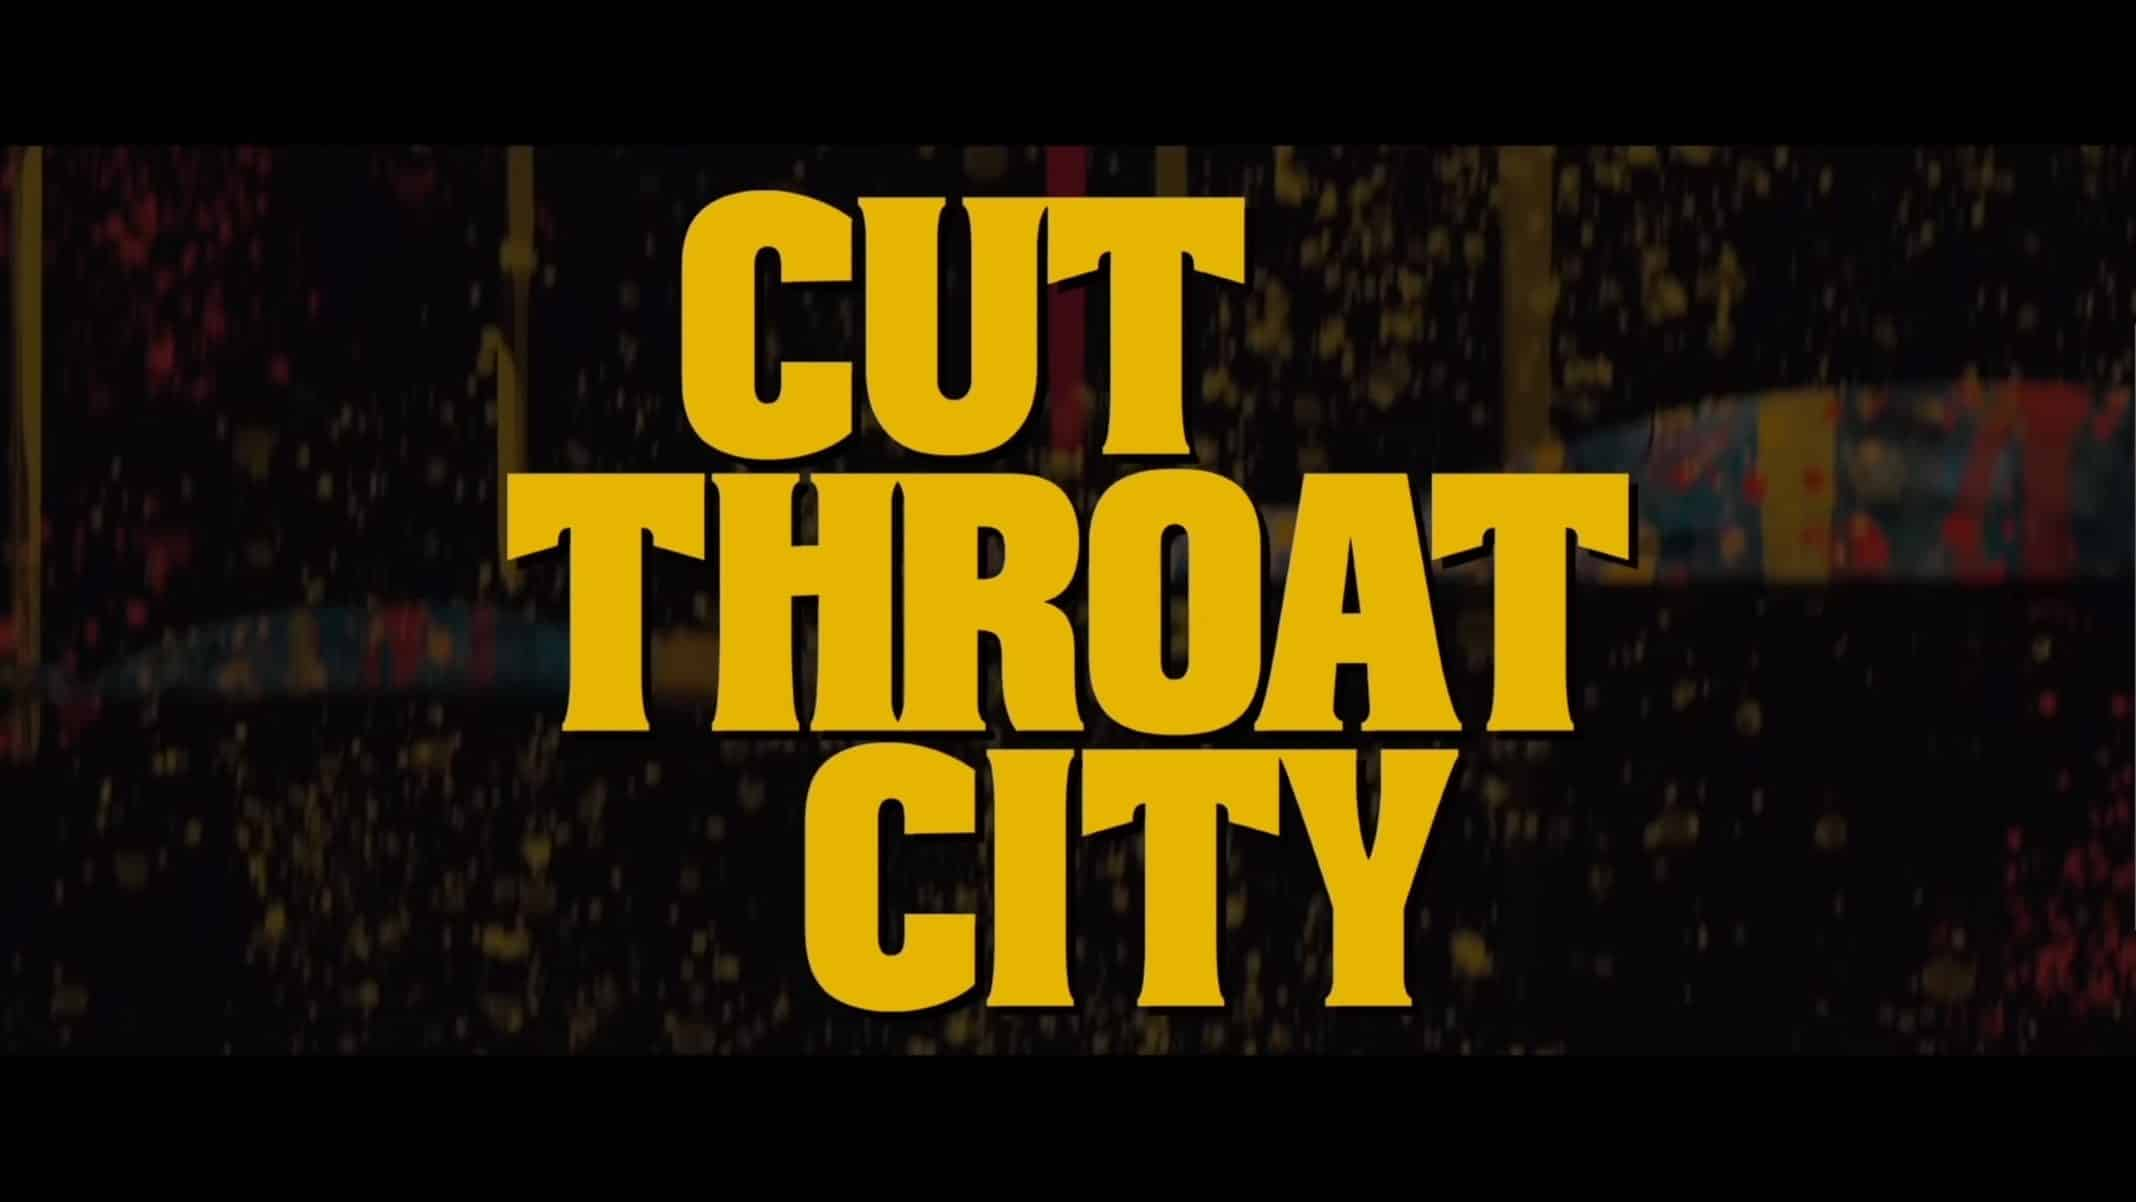 Title Card - Cut Throat City